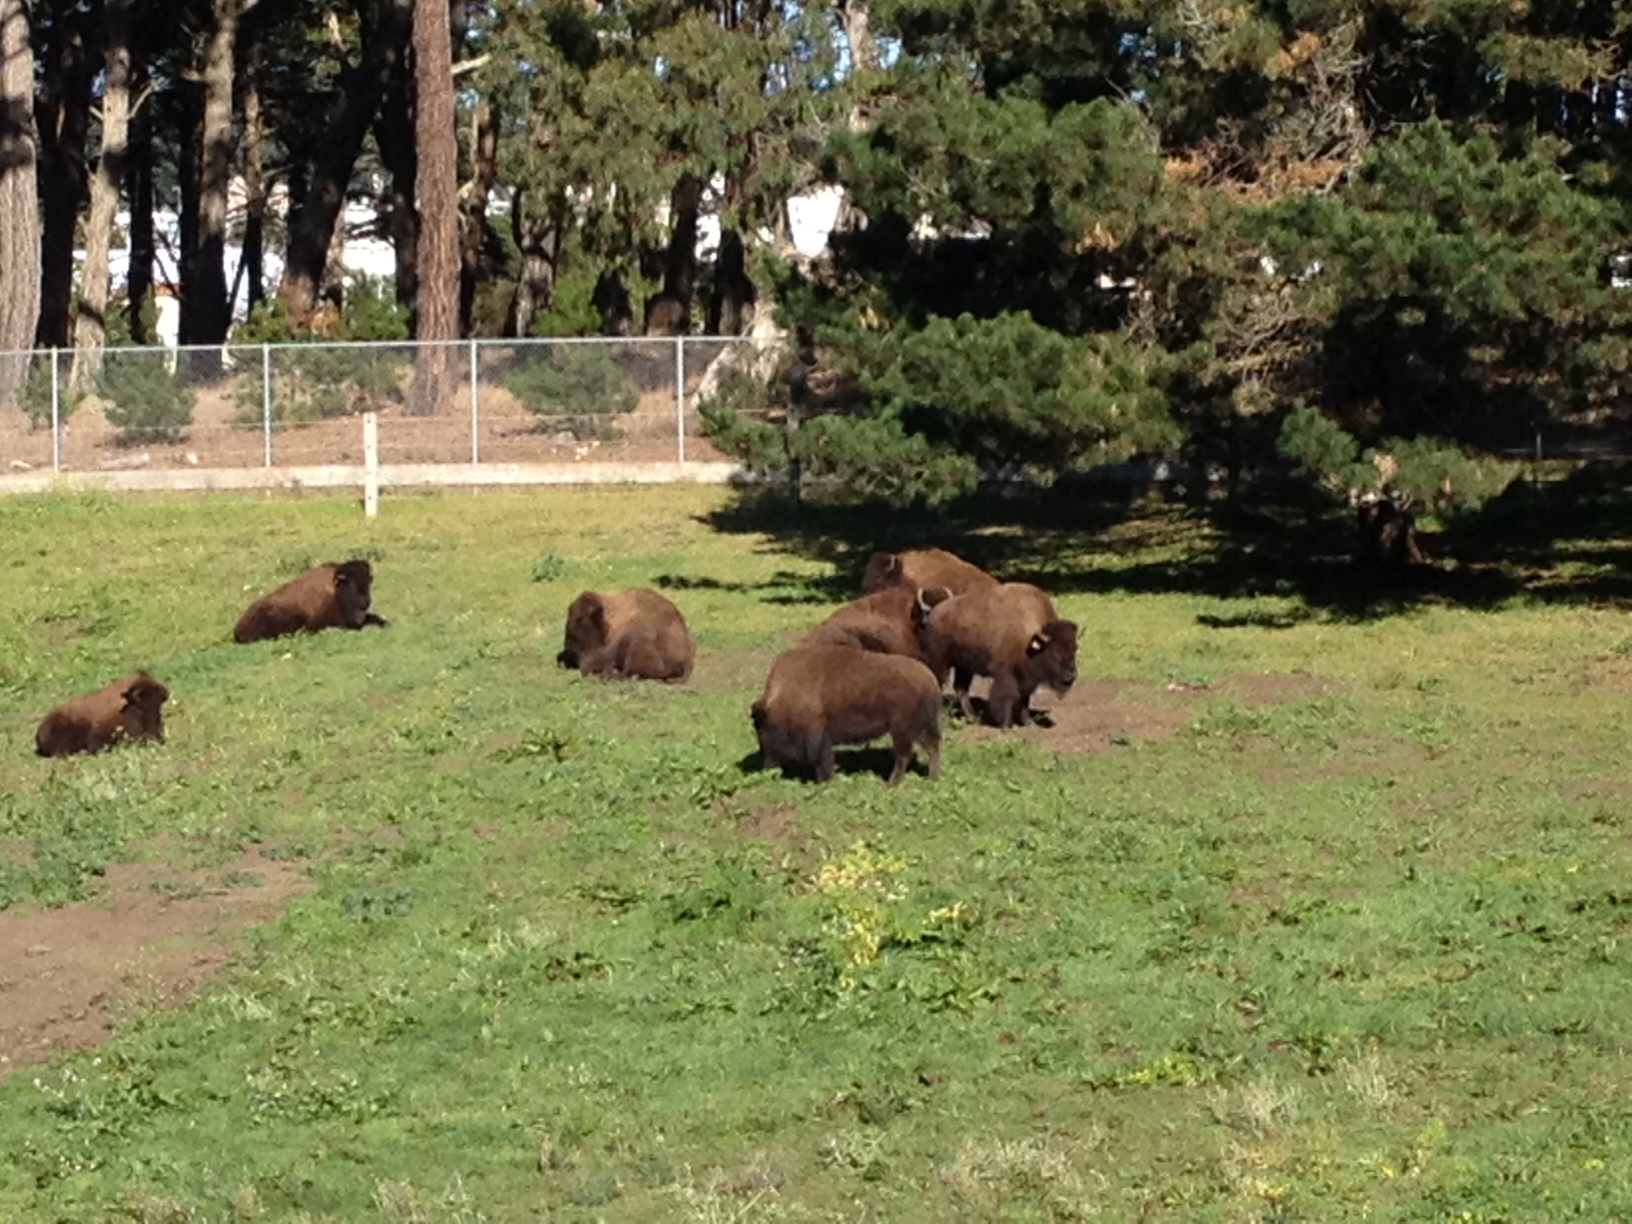 Caption: The bison of Golden Gate Park., Credit: Laura Klivans